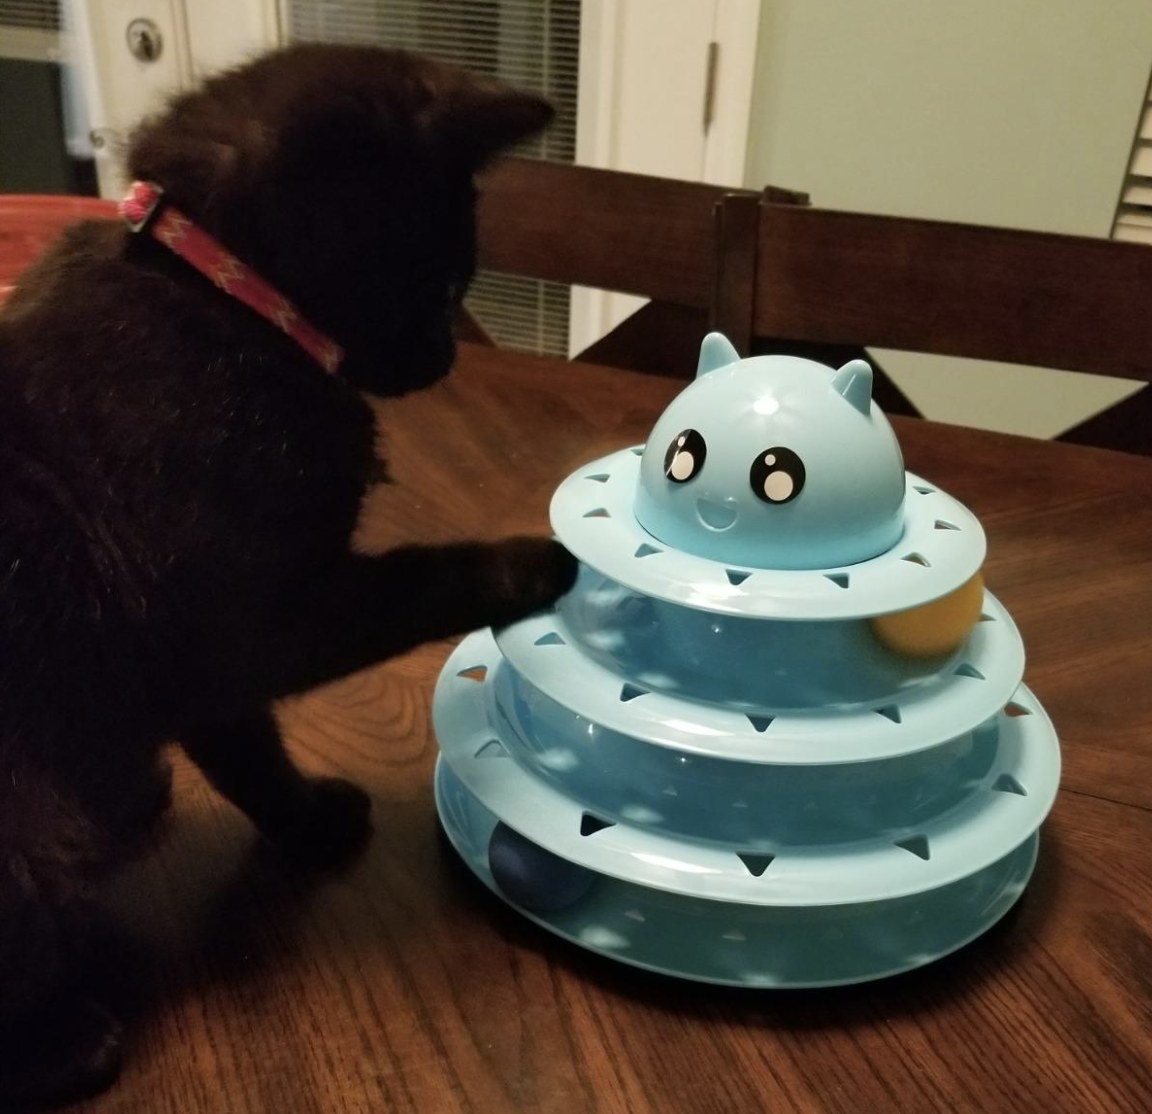 a black kitten playing with a cyan triple-tiered roller toy